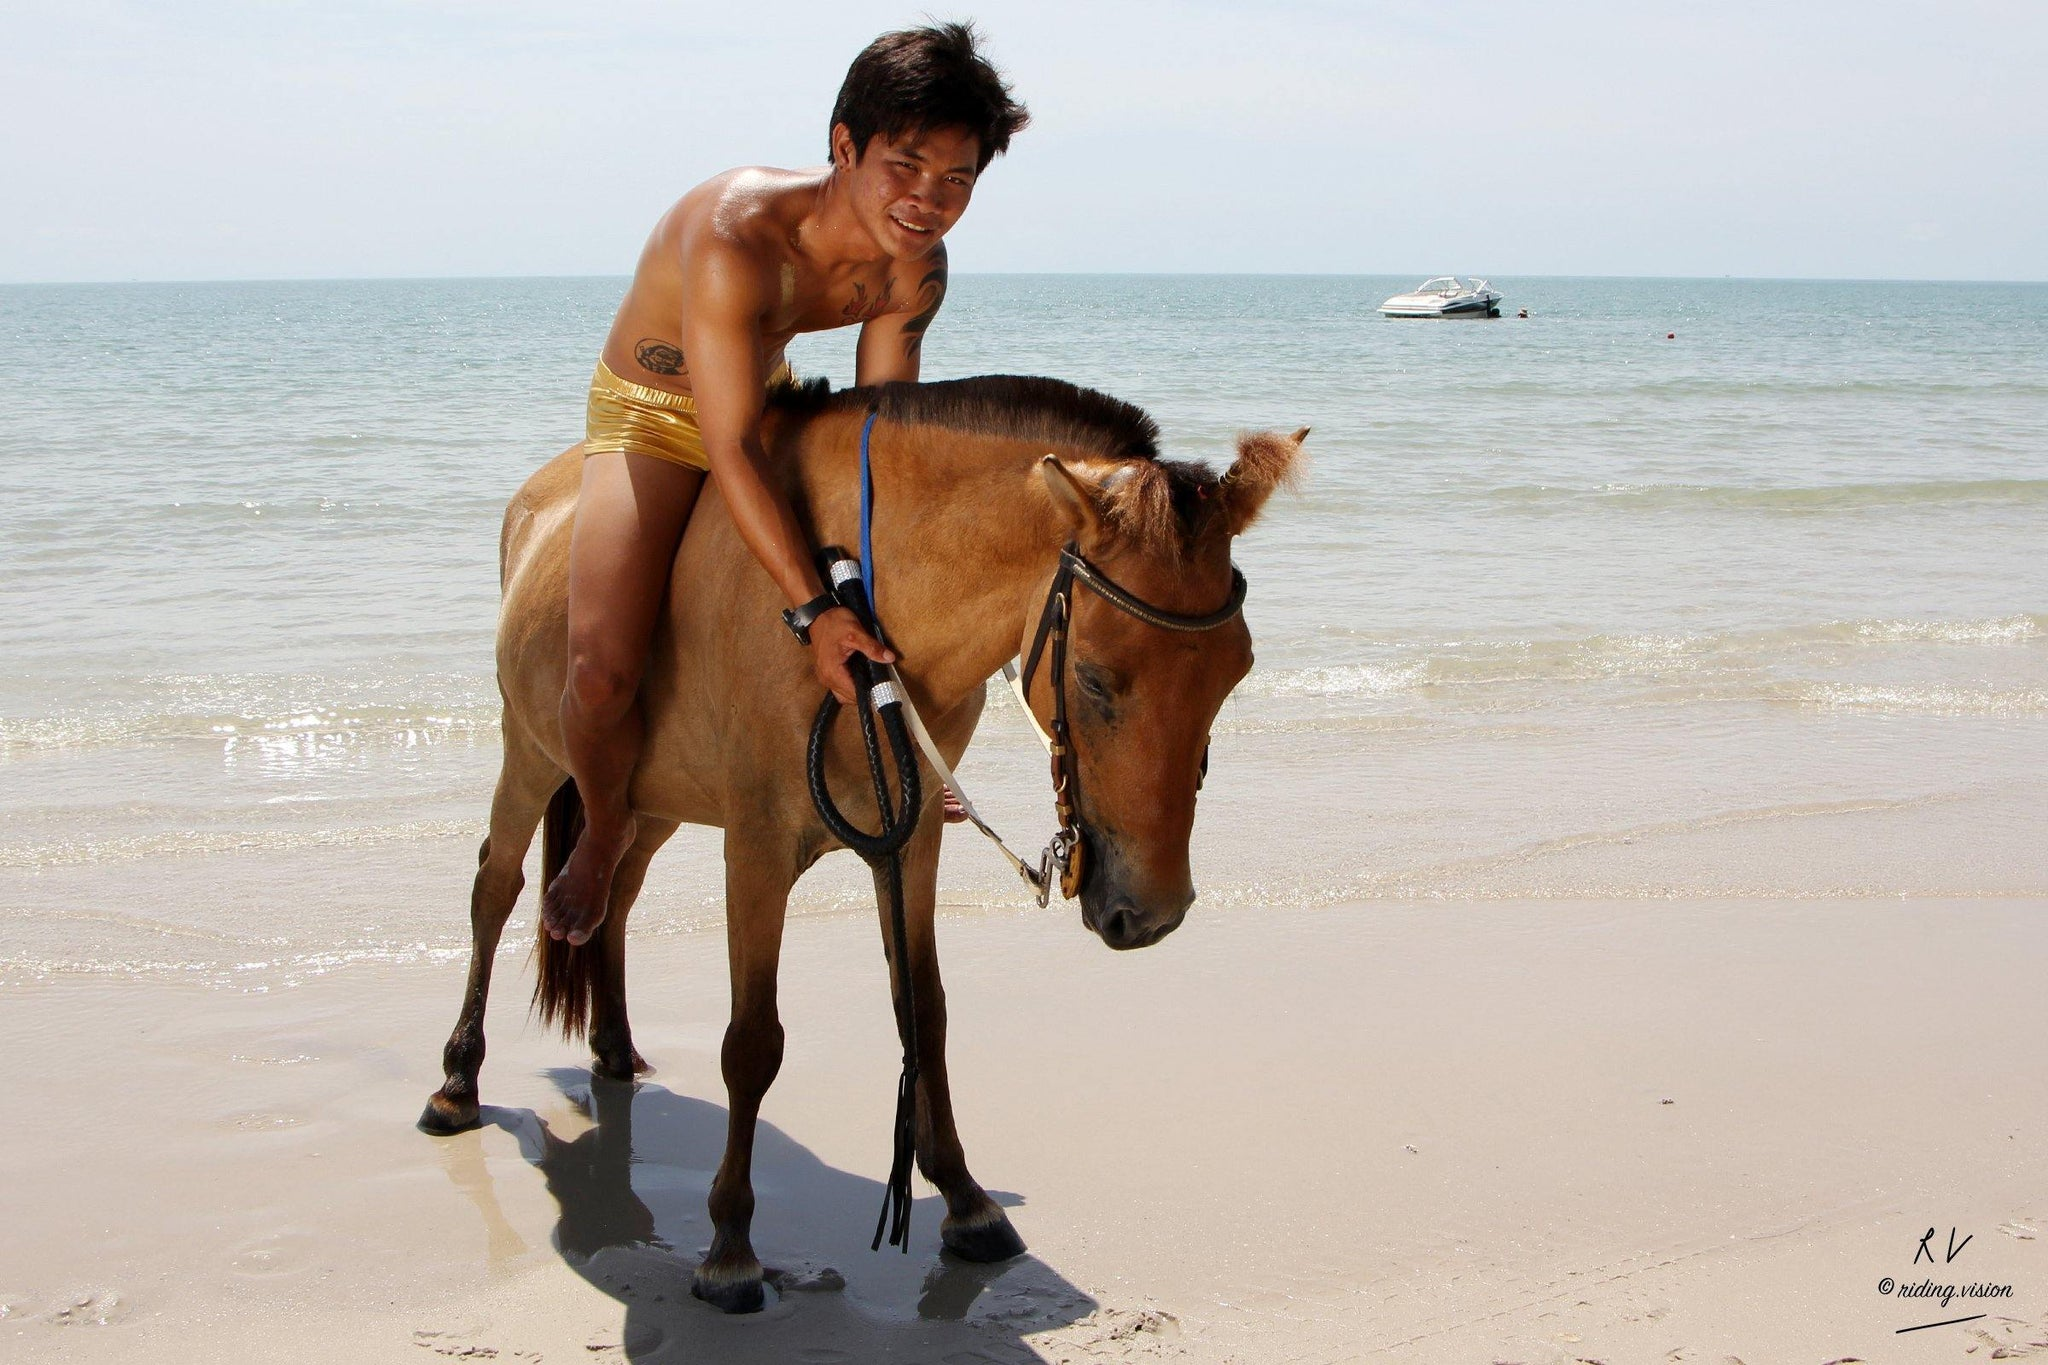 Free Sample Gallery: David in Golden Speedos Riding Bareback on Golden Pony, Part 2 - Riding.Vision